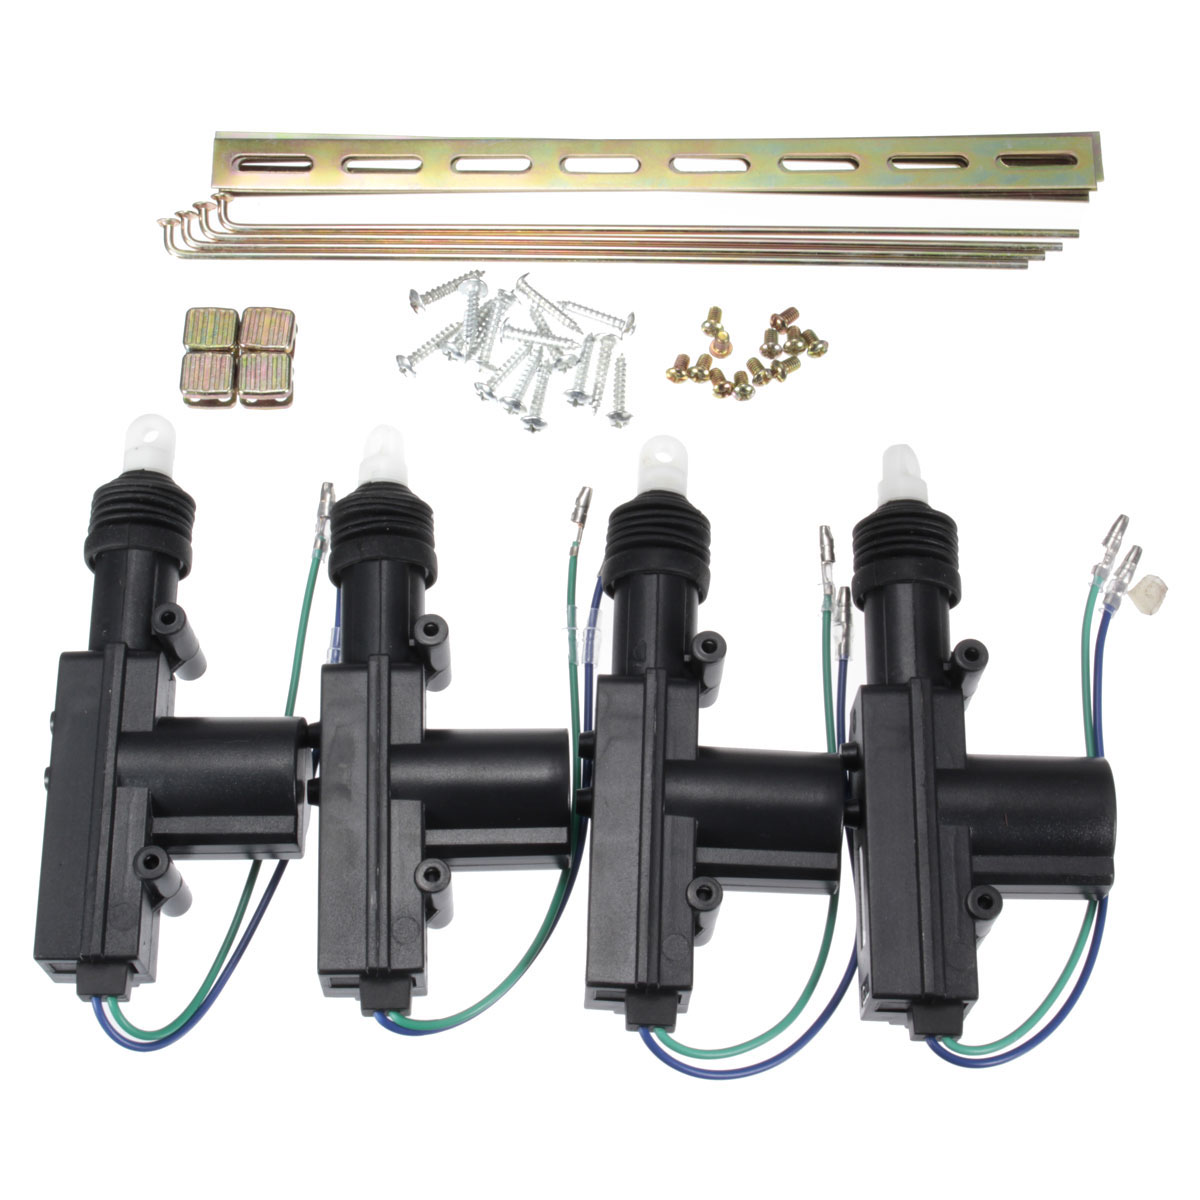 4X 12V Universal Auto Car Door Power Central Lock Motor 2 Wire Actuator Auto Vehicle Remote Central Locking System Motor